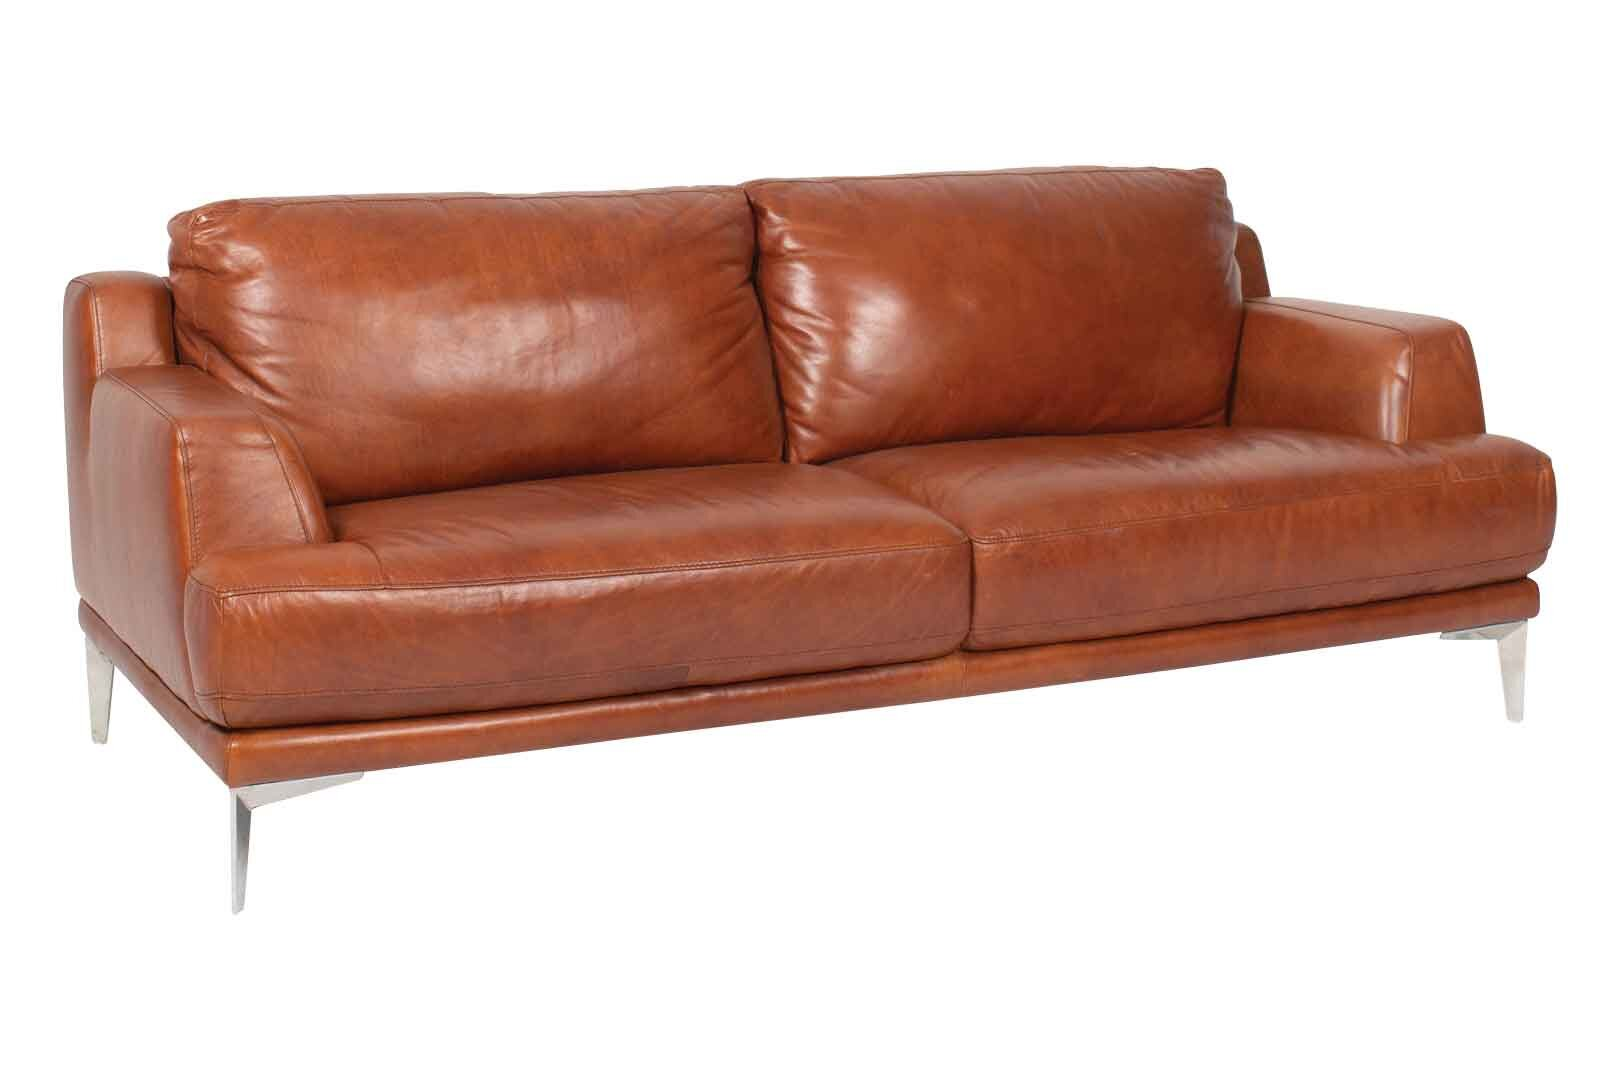 3 Seater Leather Sofa Fullhouse